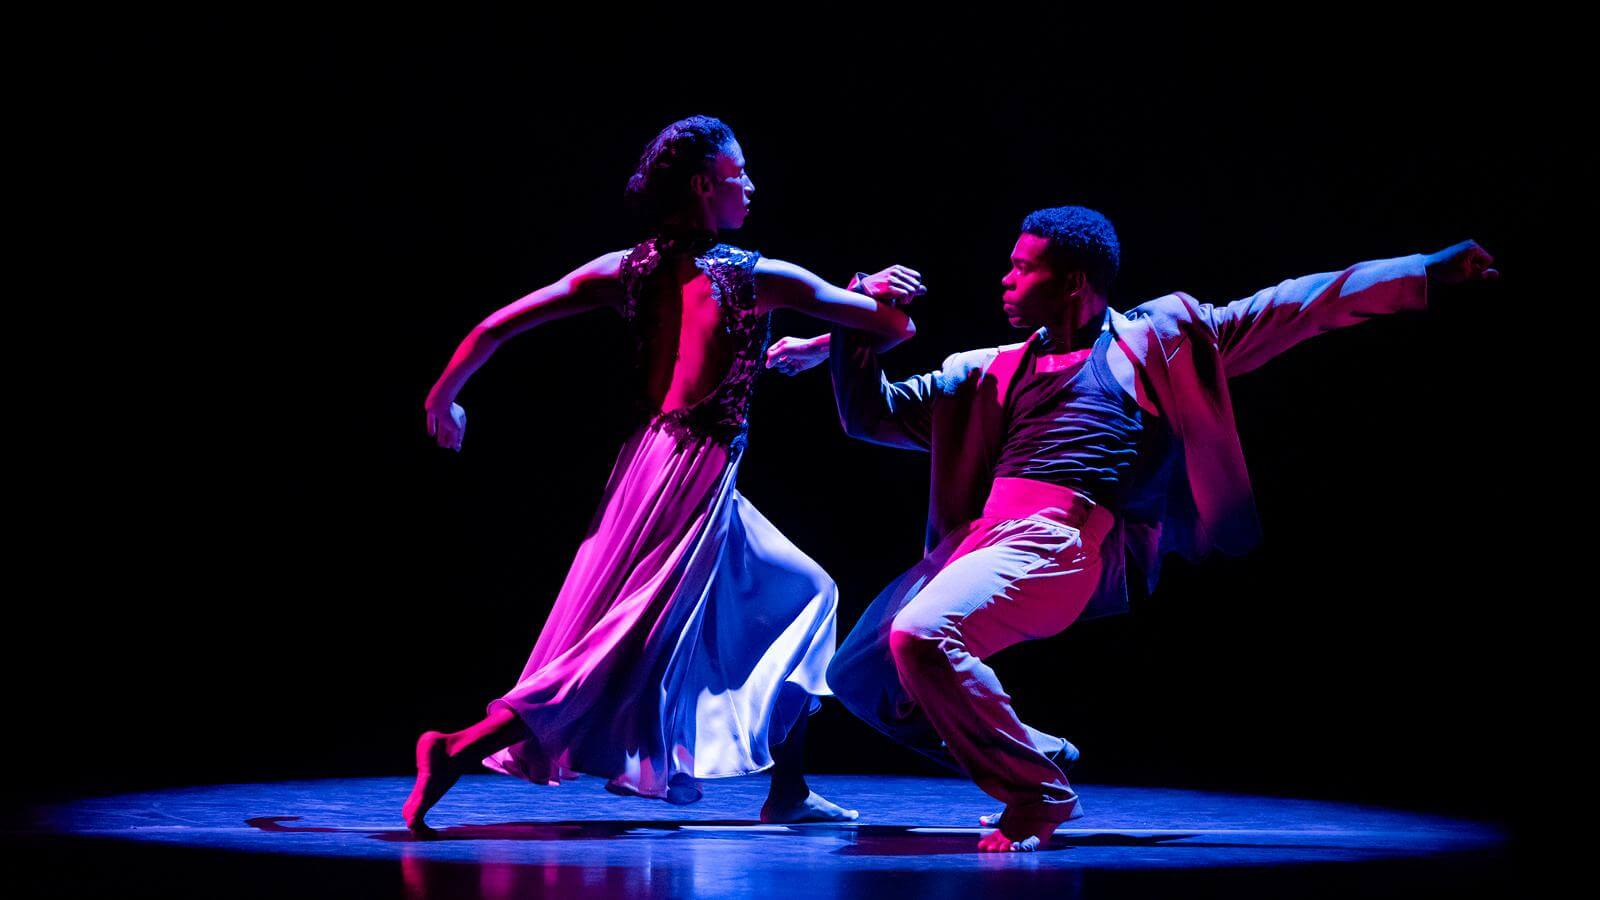 Jacqueline Green and Solomon Dumas in Ronald K. Brown's The Call. Photo by Paul Kolnik